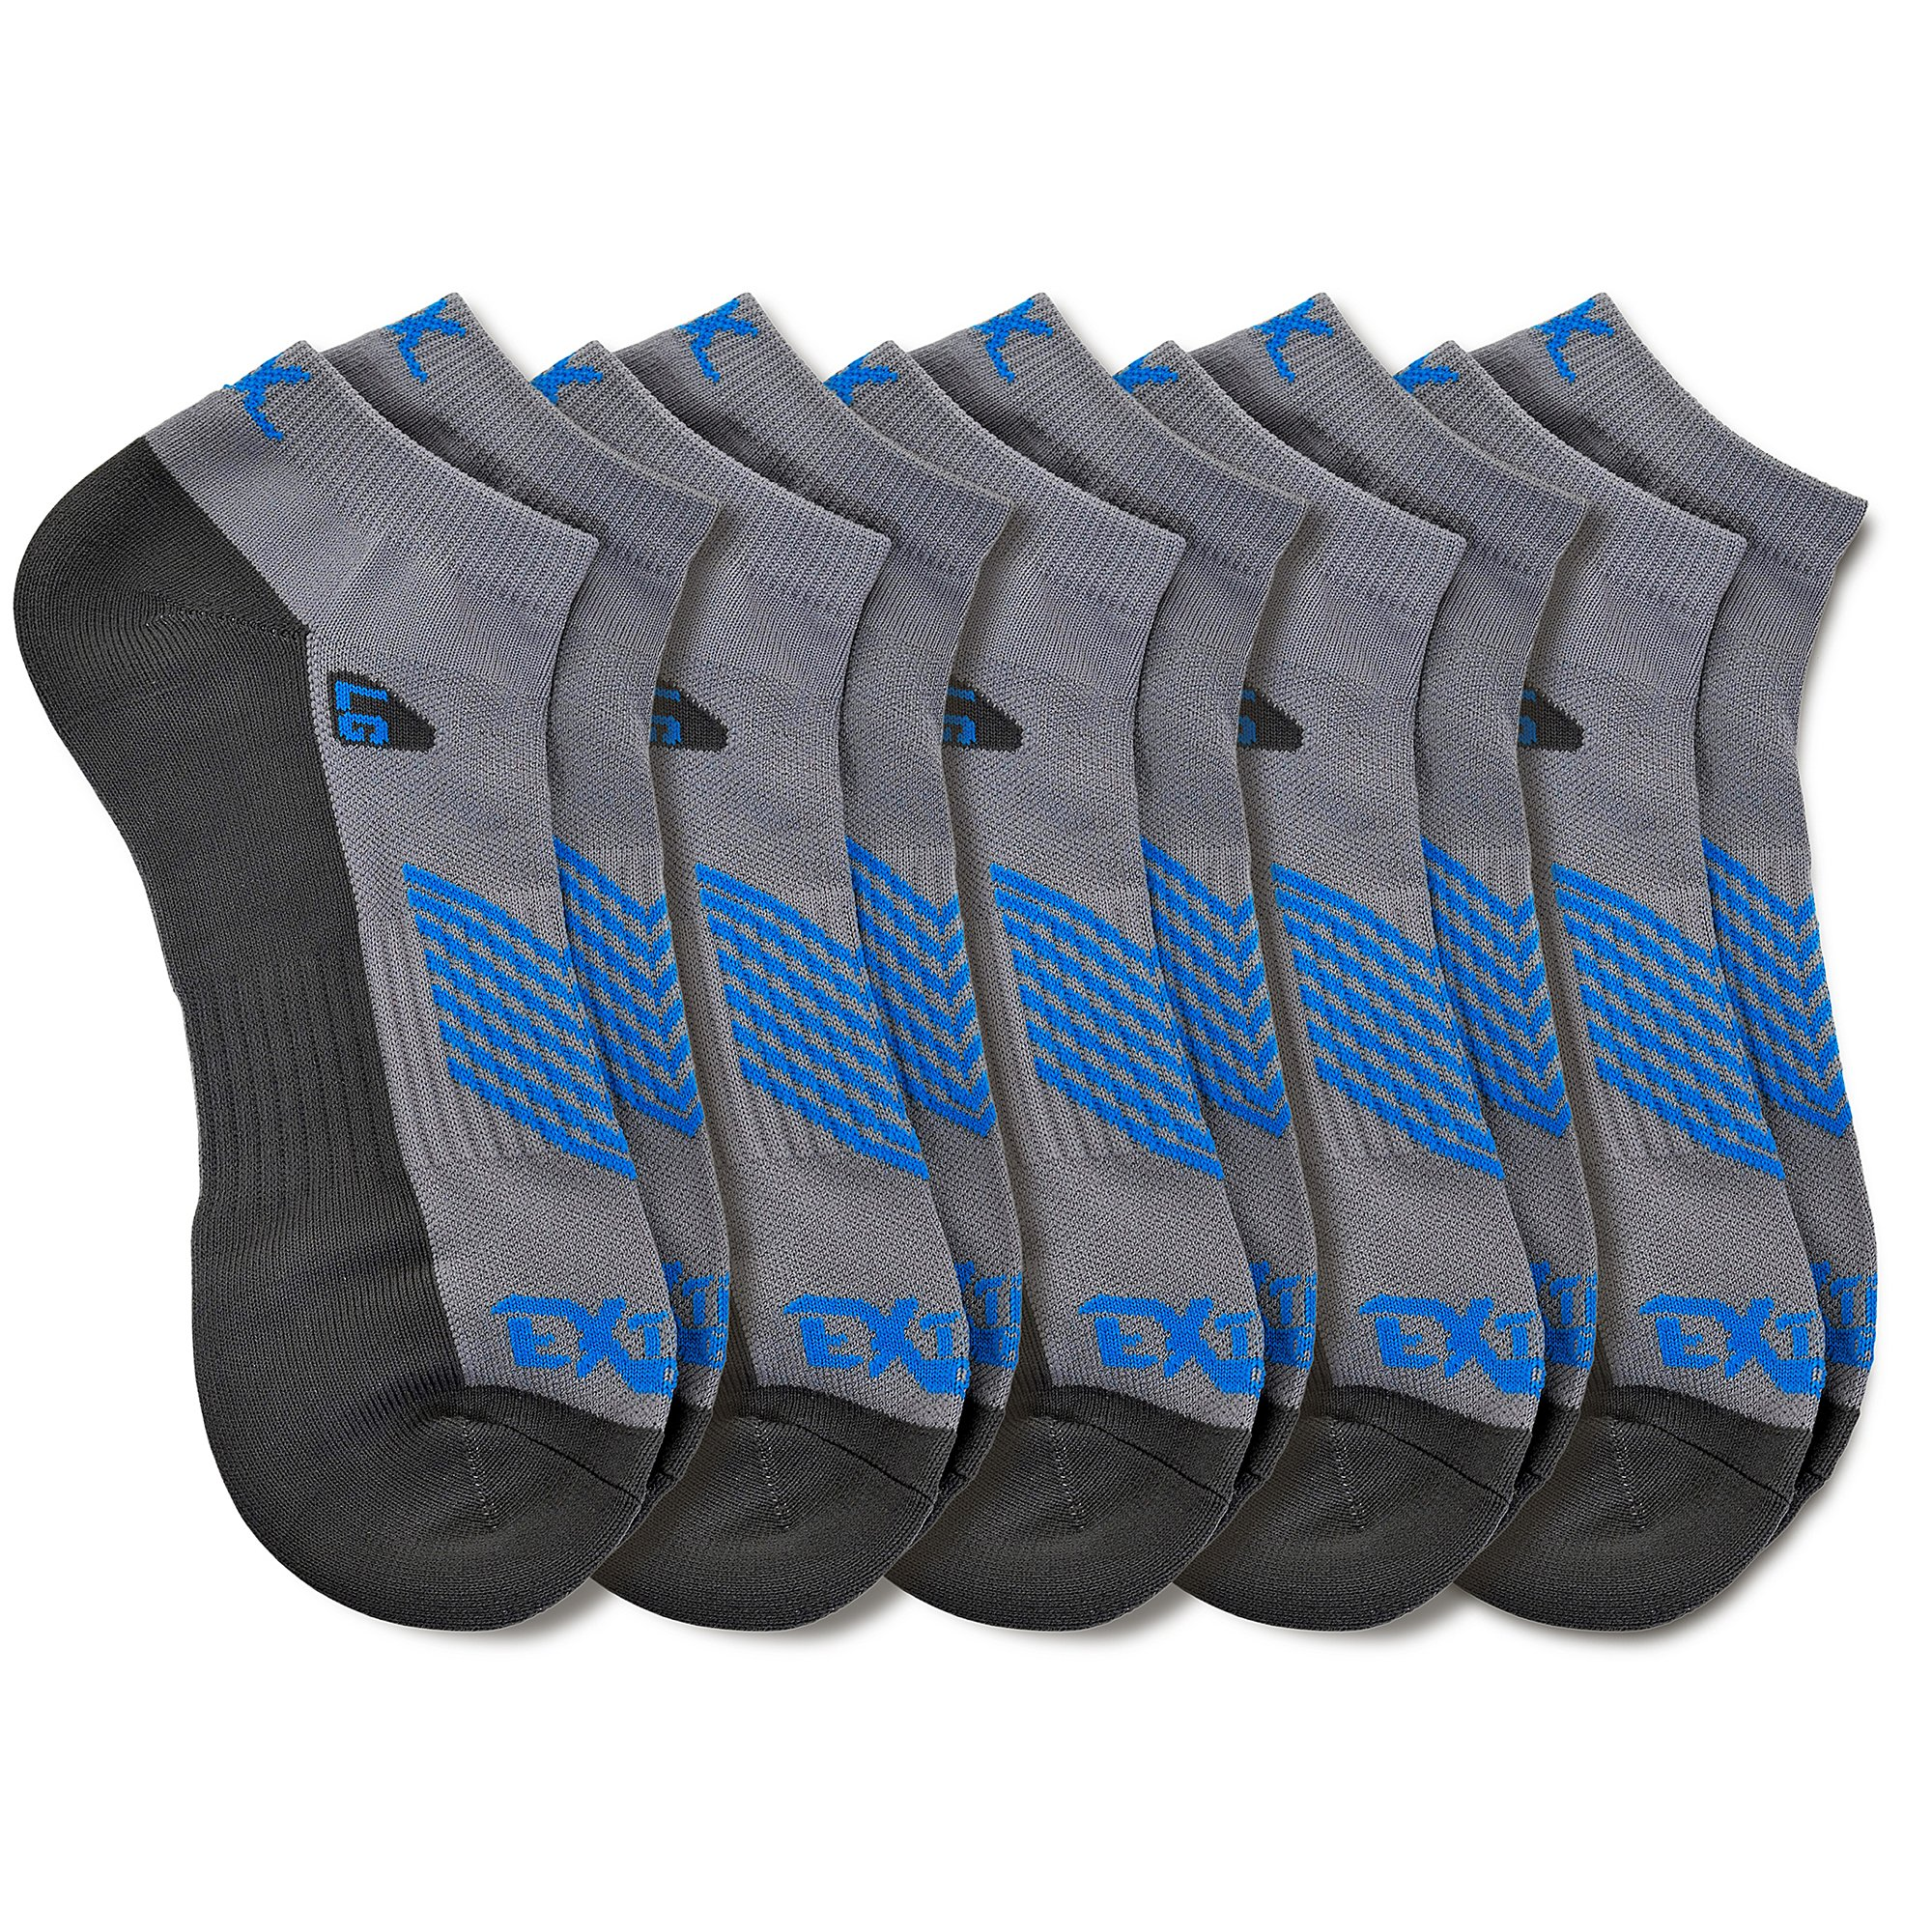 Extreme Gear NO Show Running Socks - High Performance Moisture Wicking Ultra Breathability No Show Blister Free Sock 3 Colors